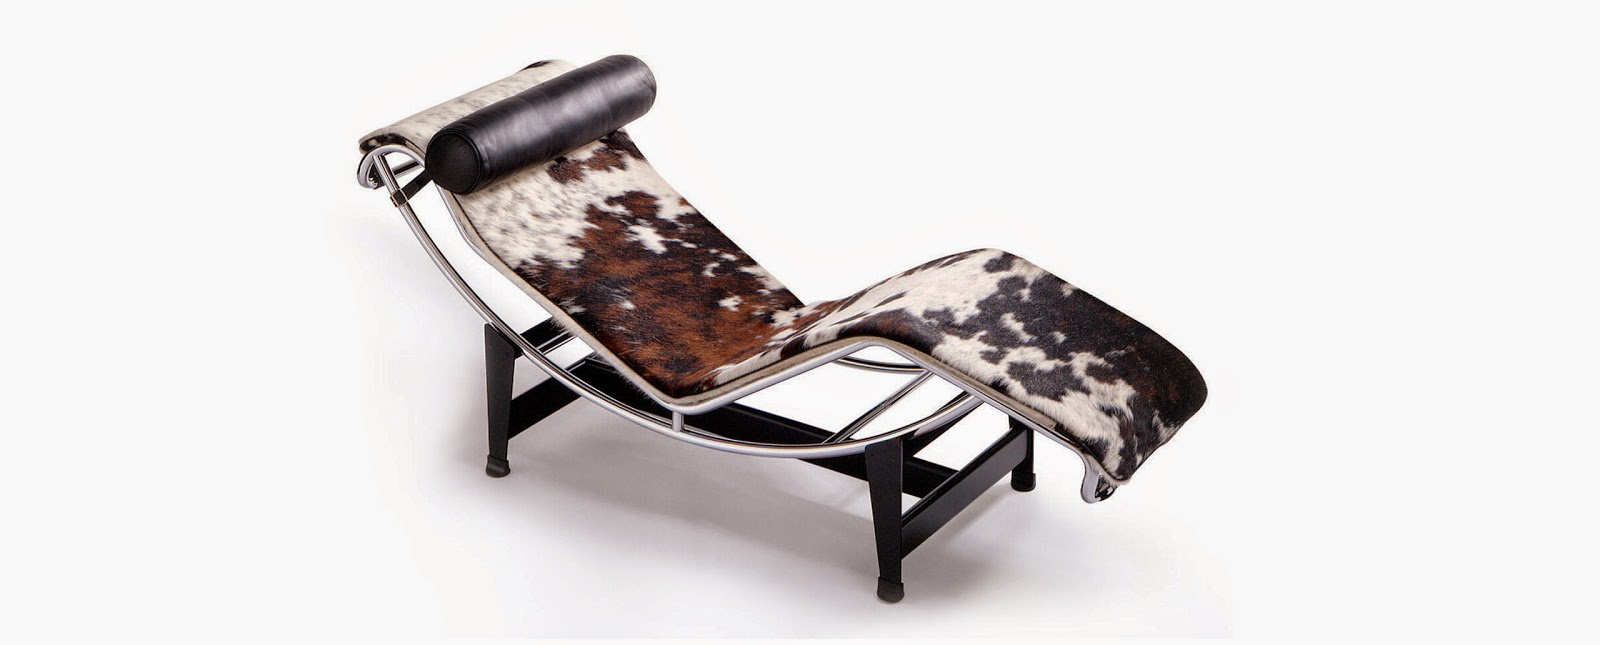 Nannasalmi horsehair jewelry le corbusier lc4 chaise lounge for Chaise lounge corbusier